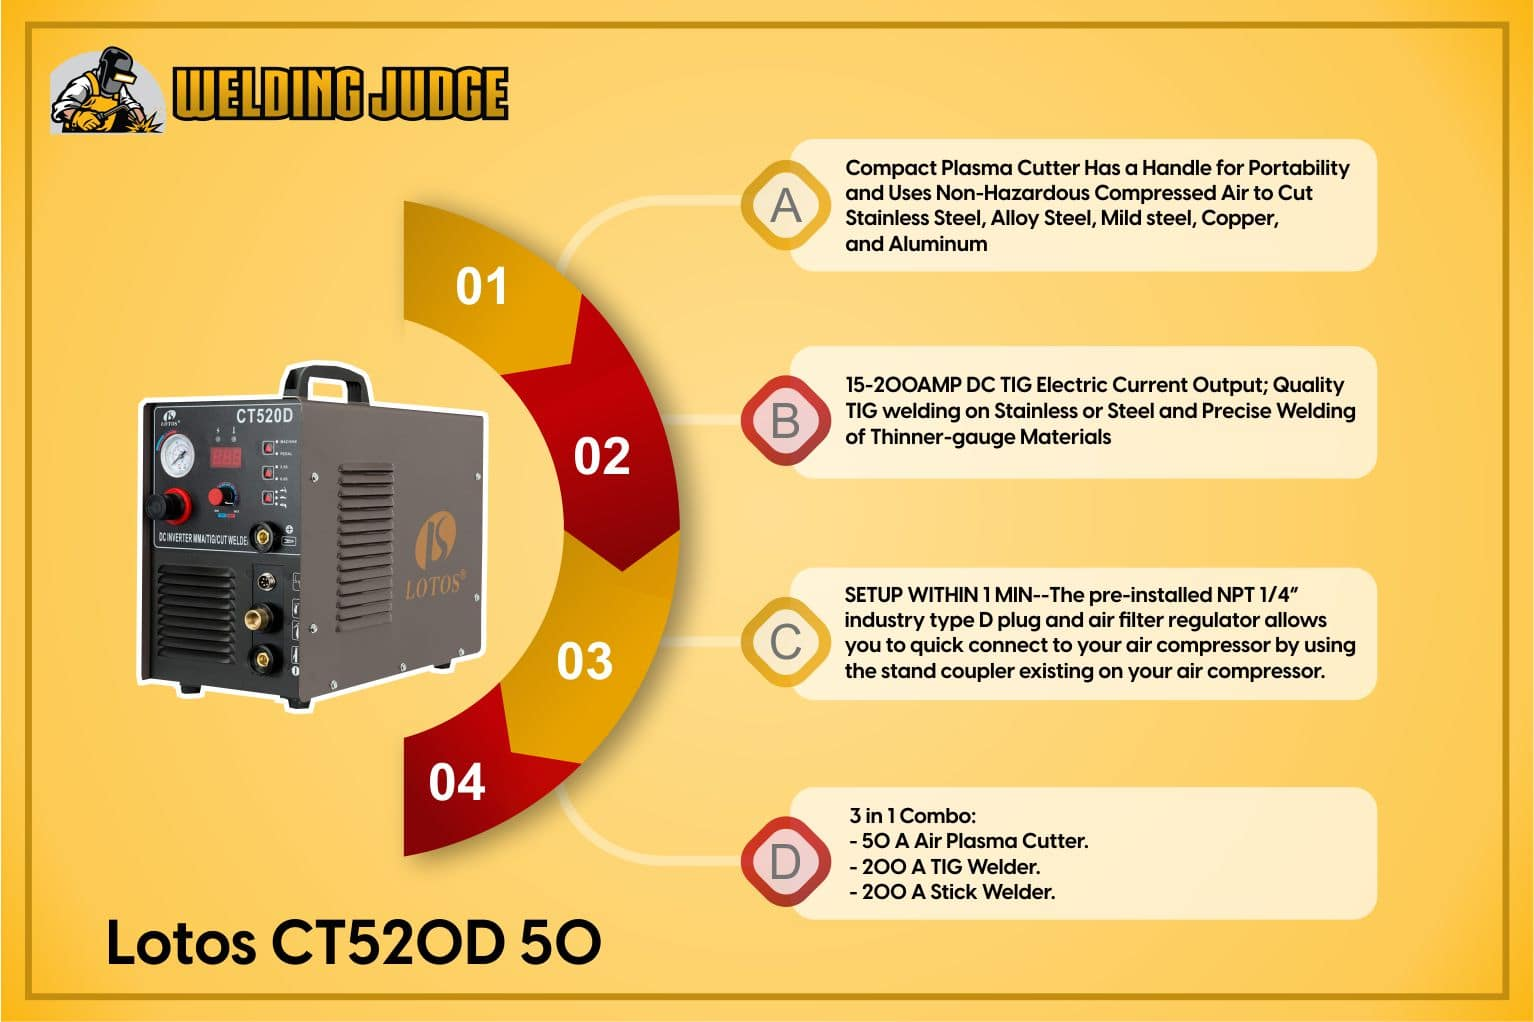 Lotos CT520D 50 - TIG STICK and Plasma Cutter infographic review